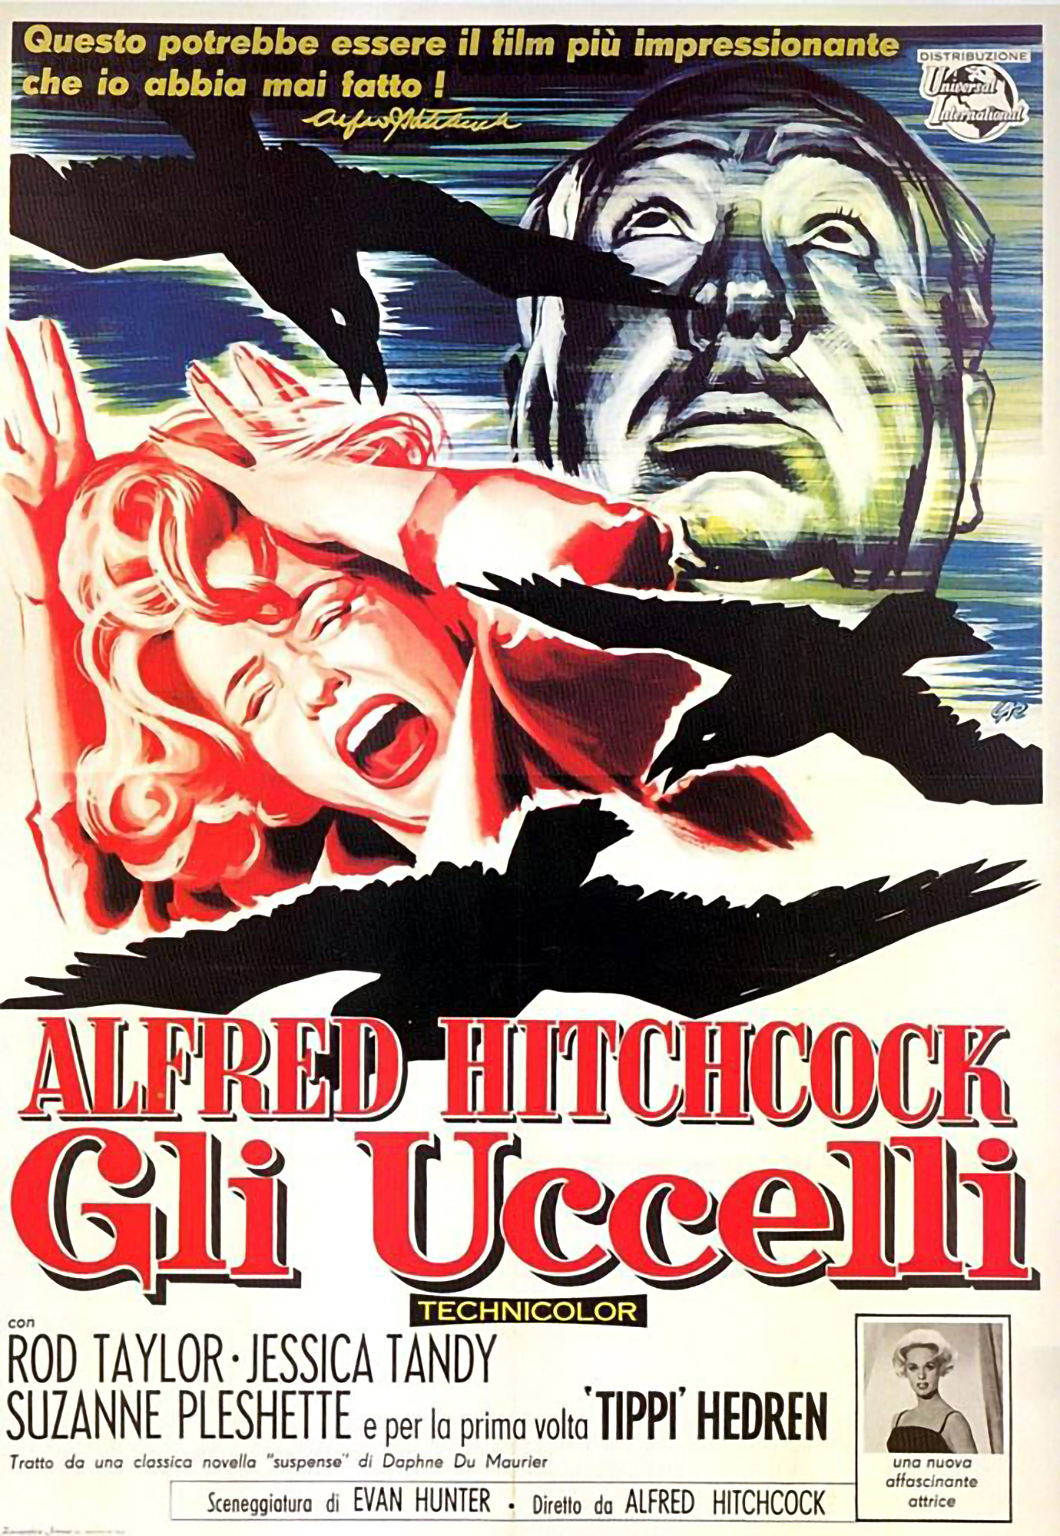 Hitchcock's The Birds Poster